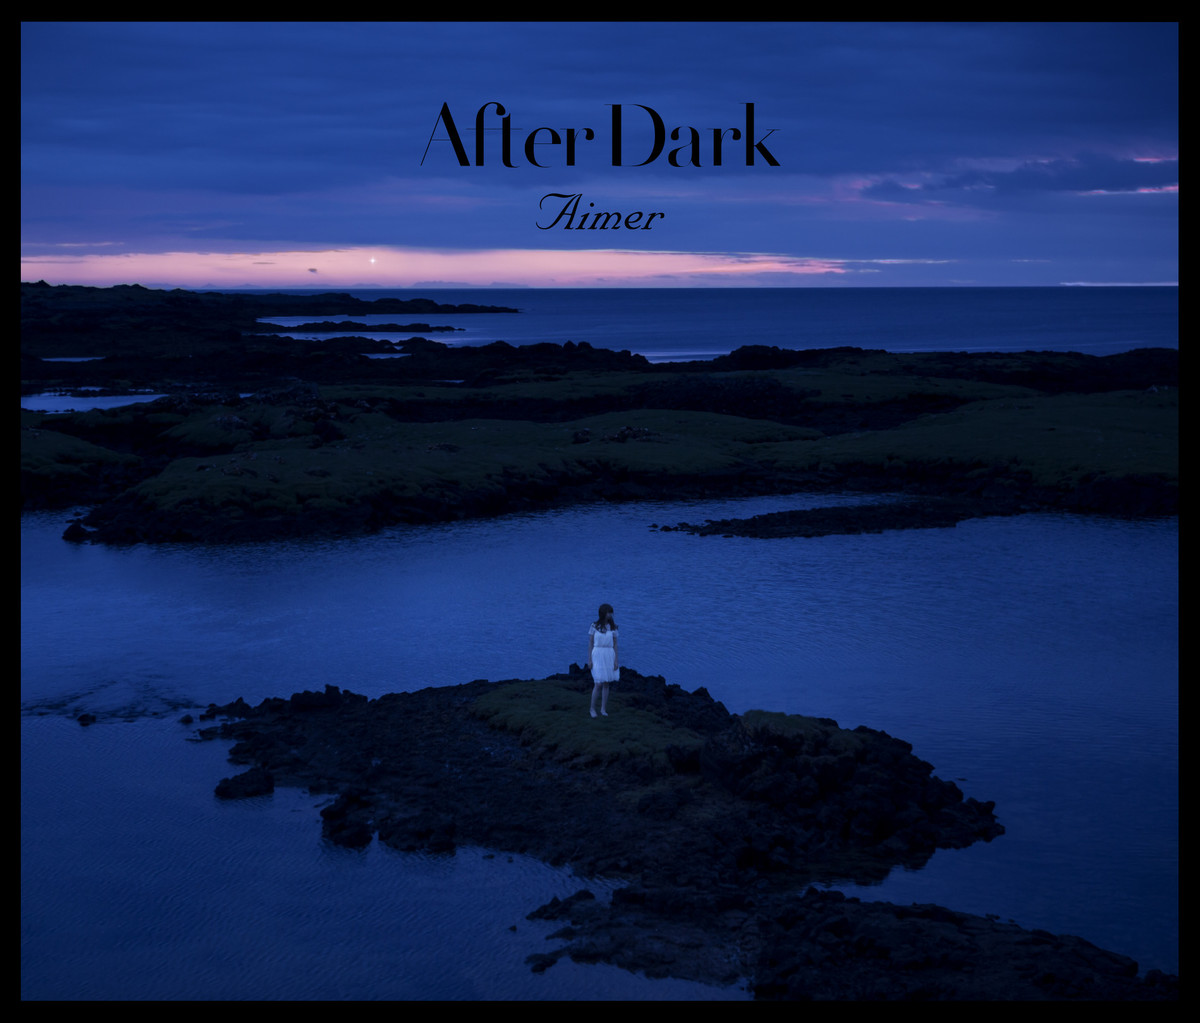 20170107.14.52 Aimer - After Dark cover.jpg